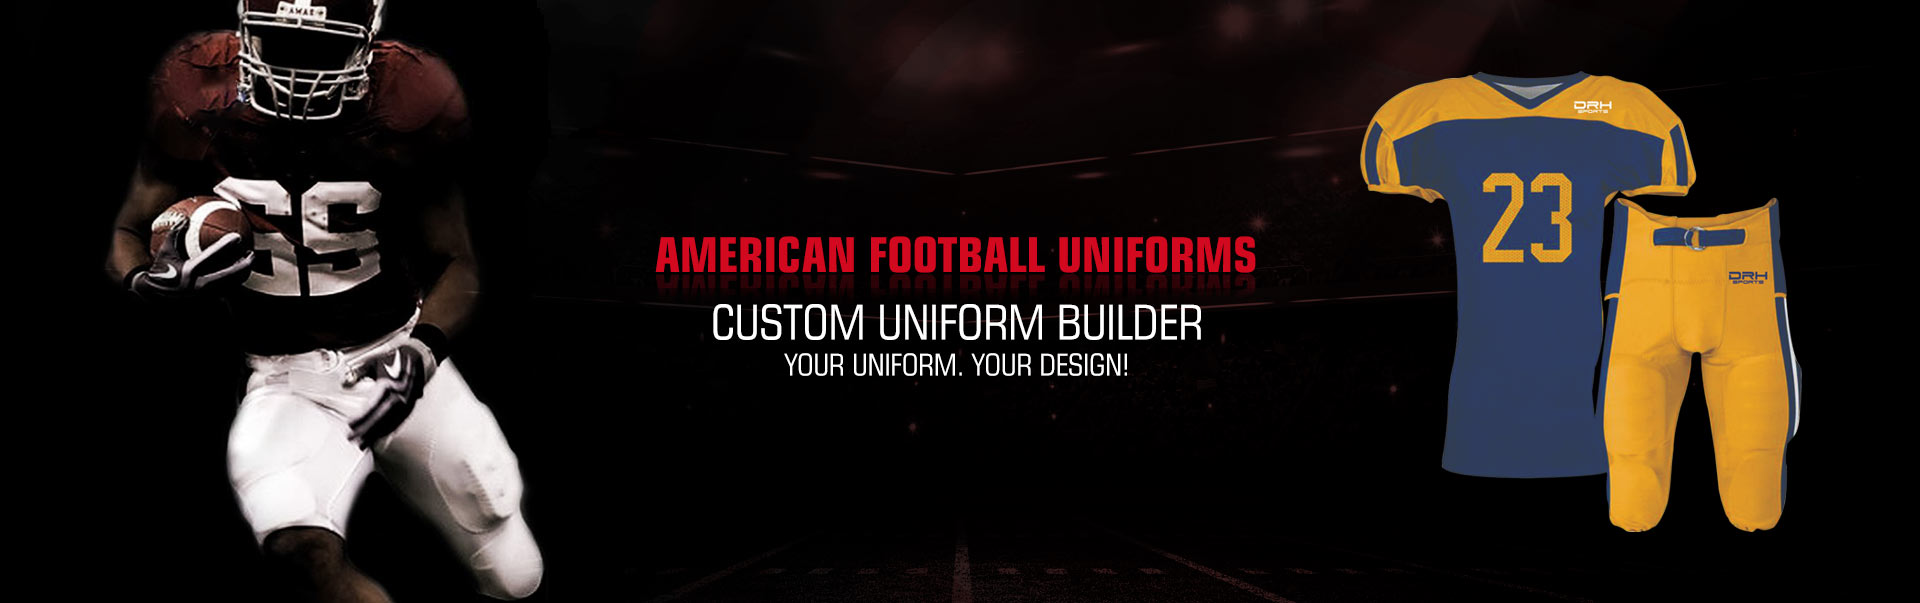 American Football Uniform Wholesaler, Suppliers in Yelets